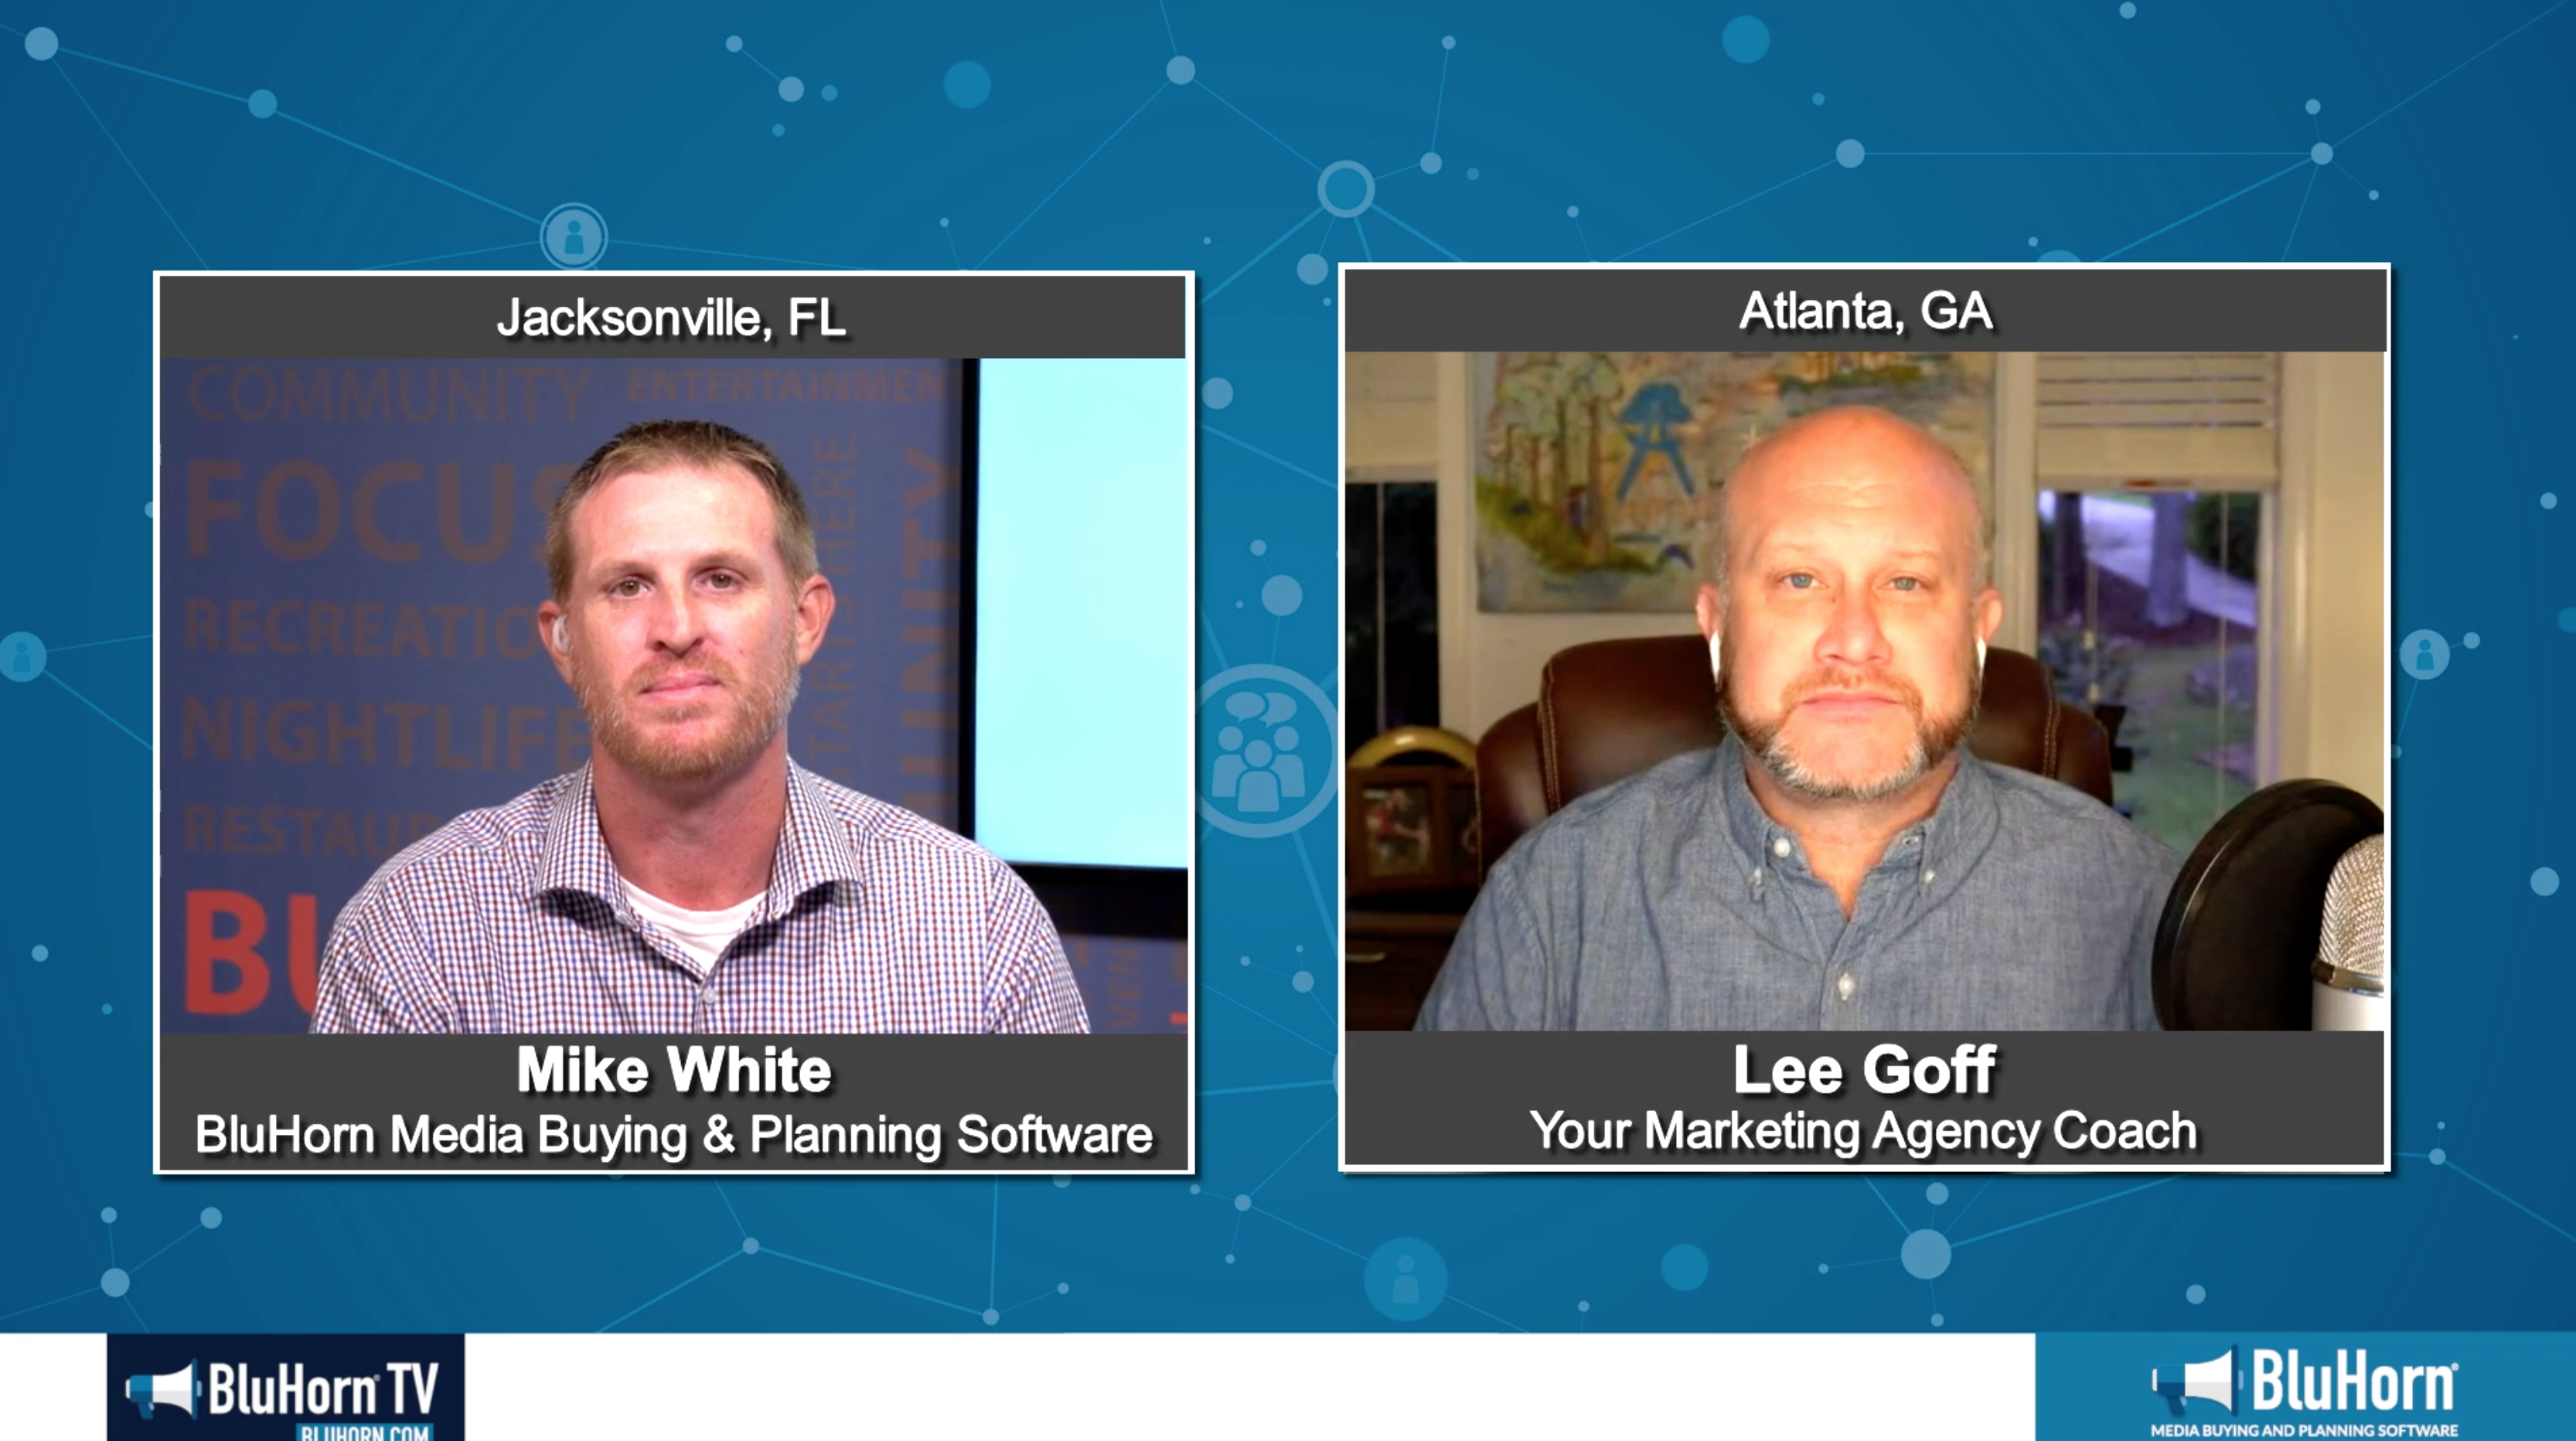 Marketing for Your Future with Lee Goff from Lee Goff, Inc.